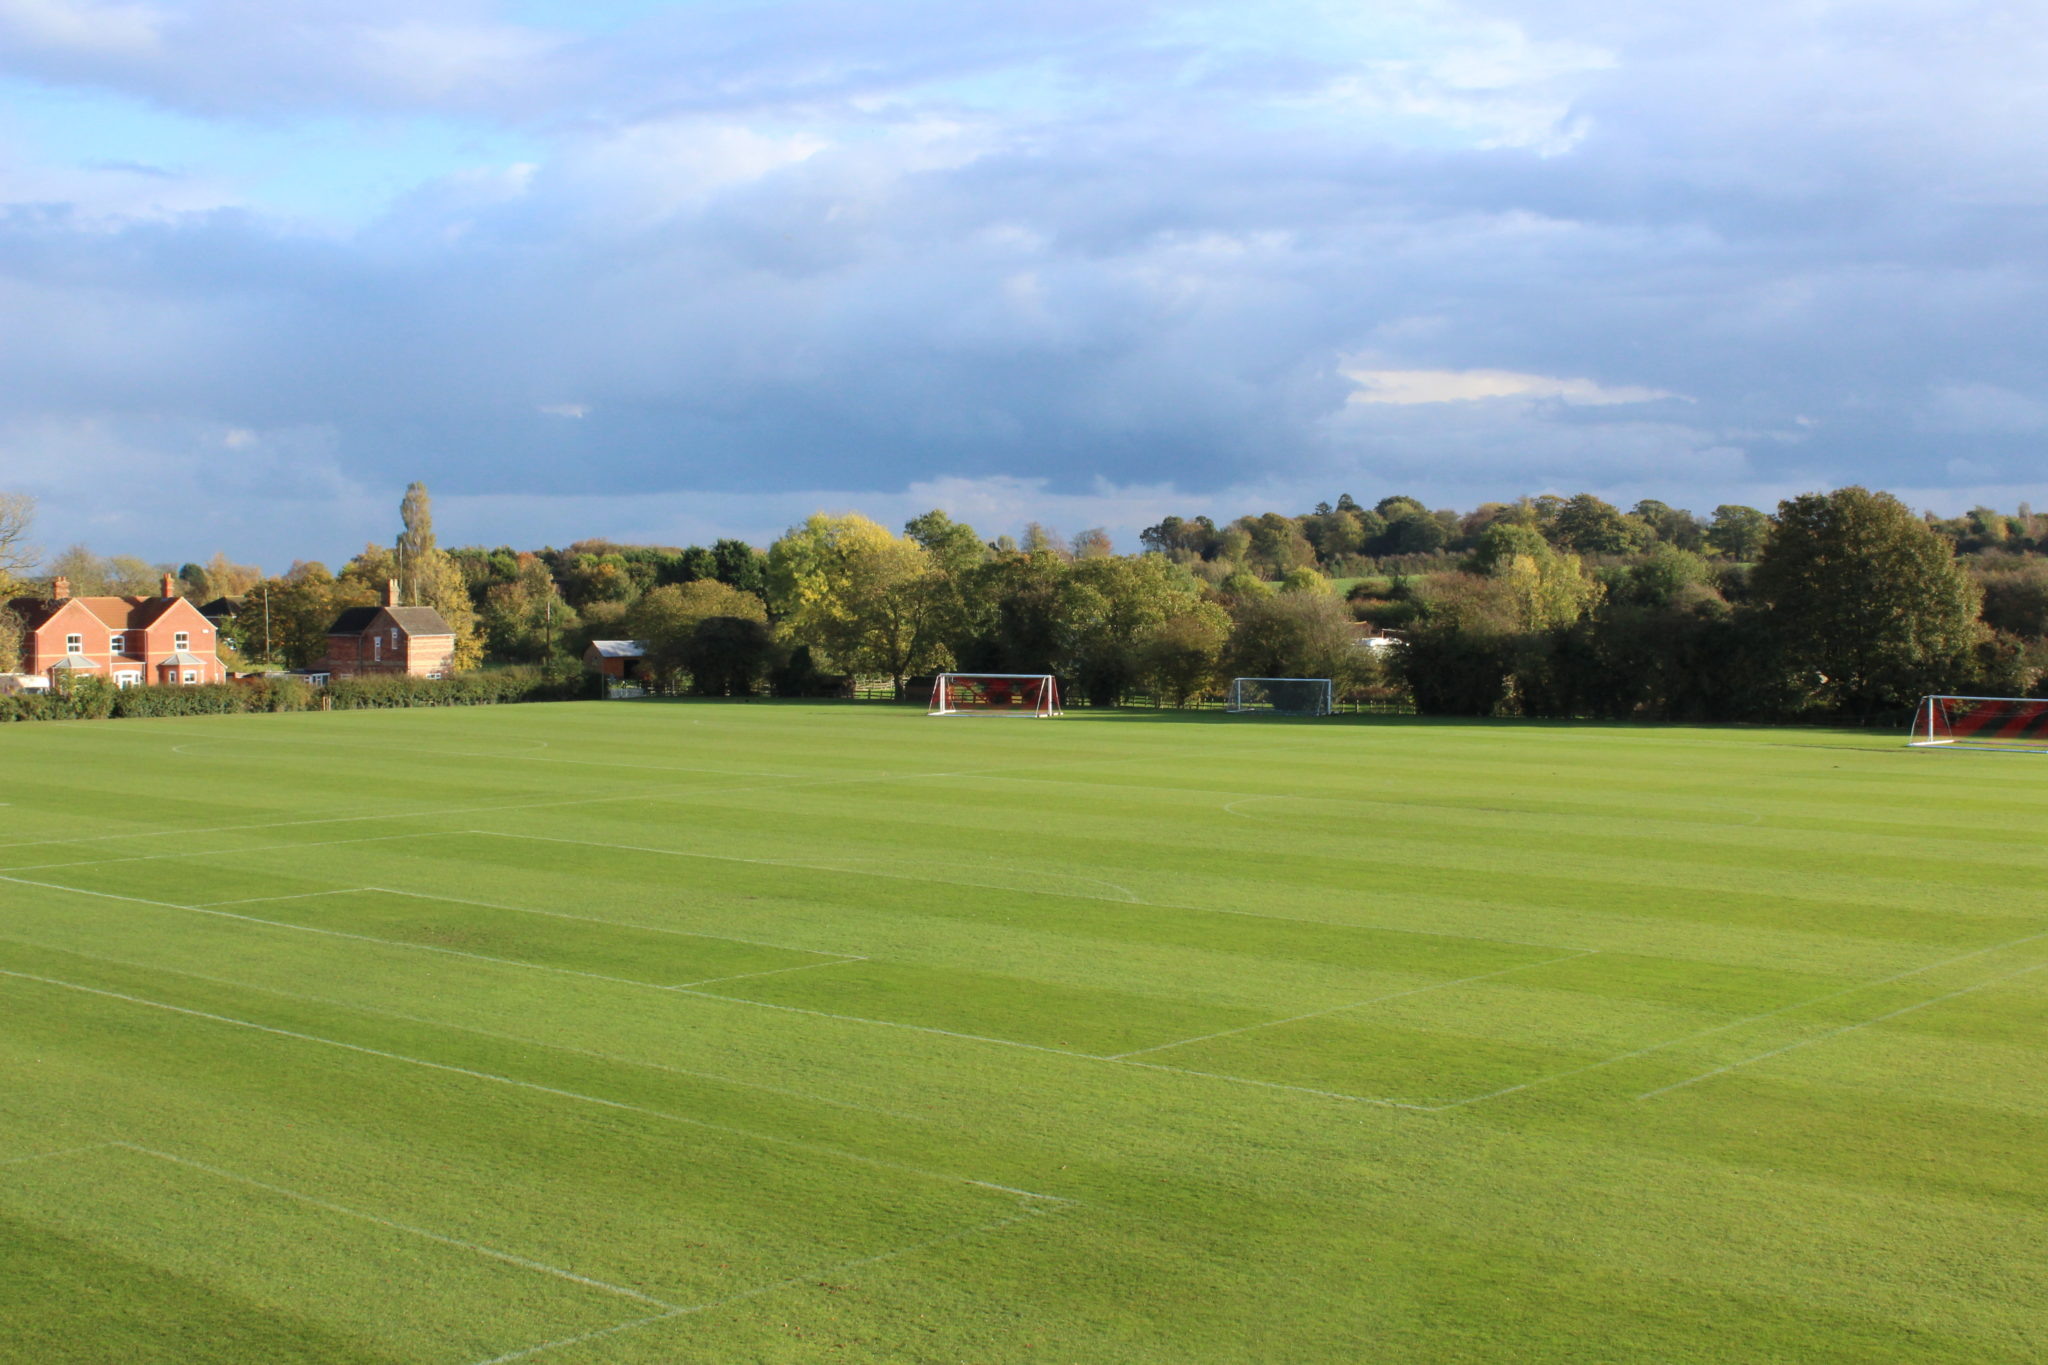 Football Pitch, Grass, London Road Pavilion, Louth, Lincolnshire